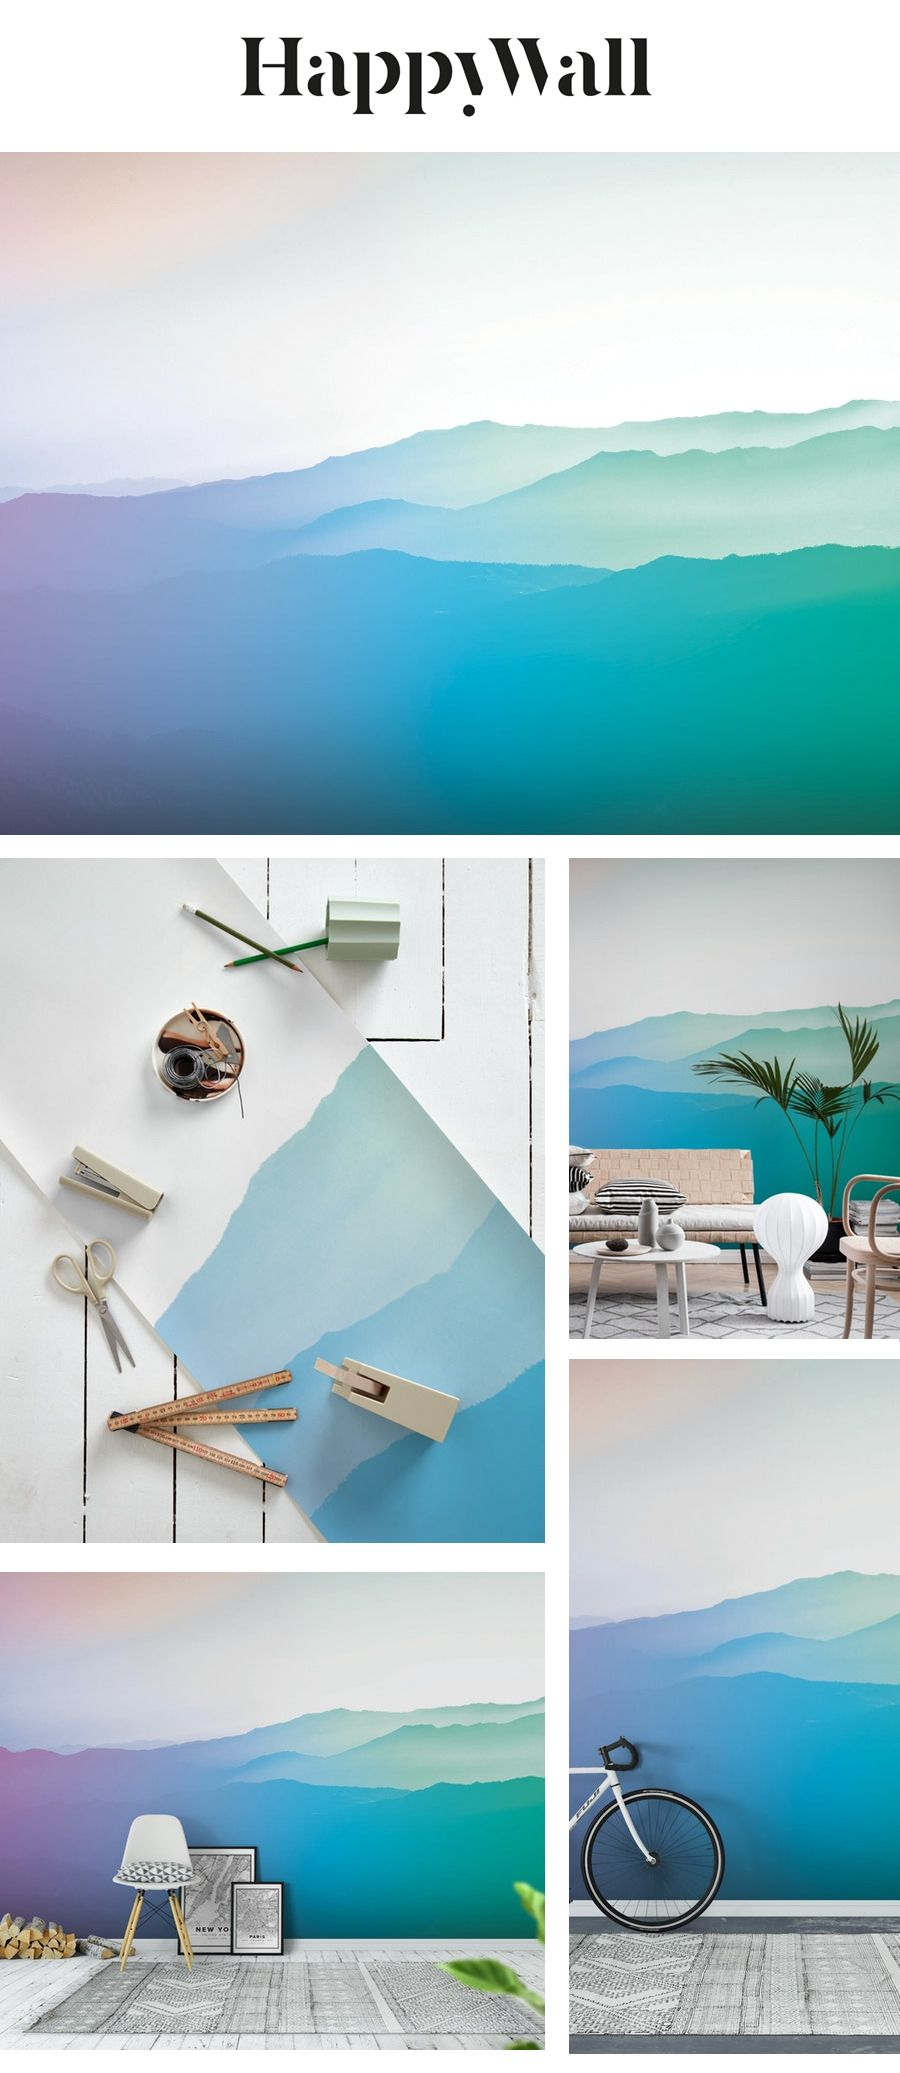 Gradient mountains Wall mural in 2020 Wall murals